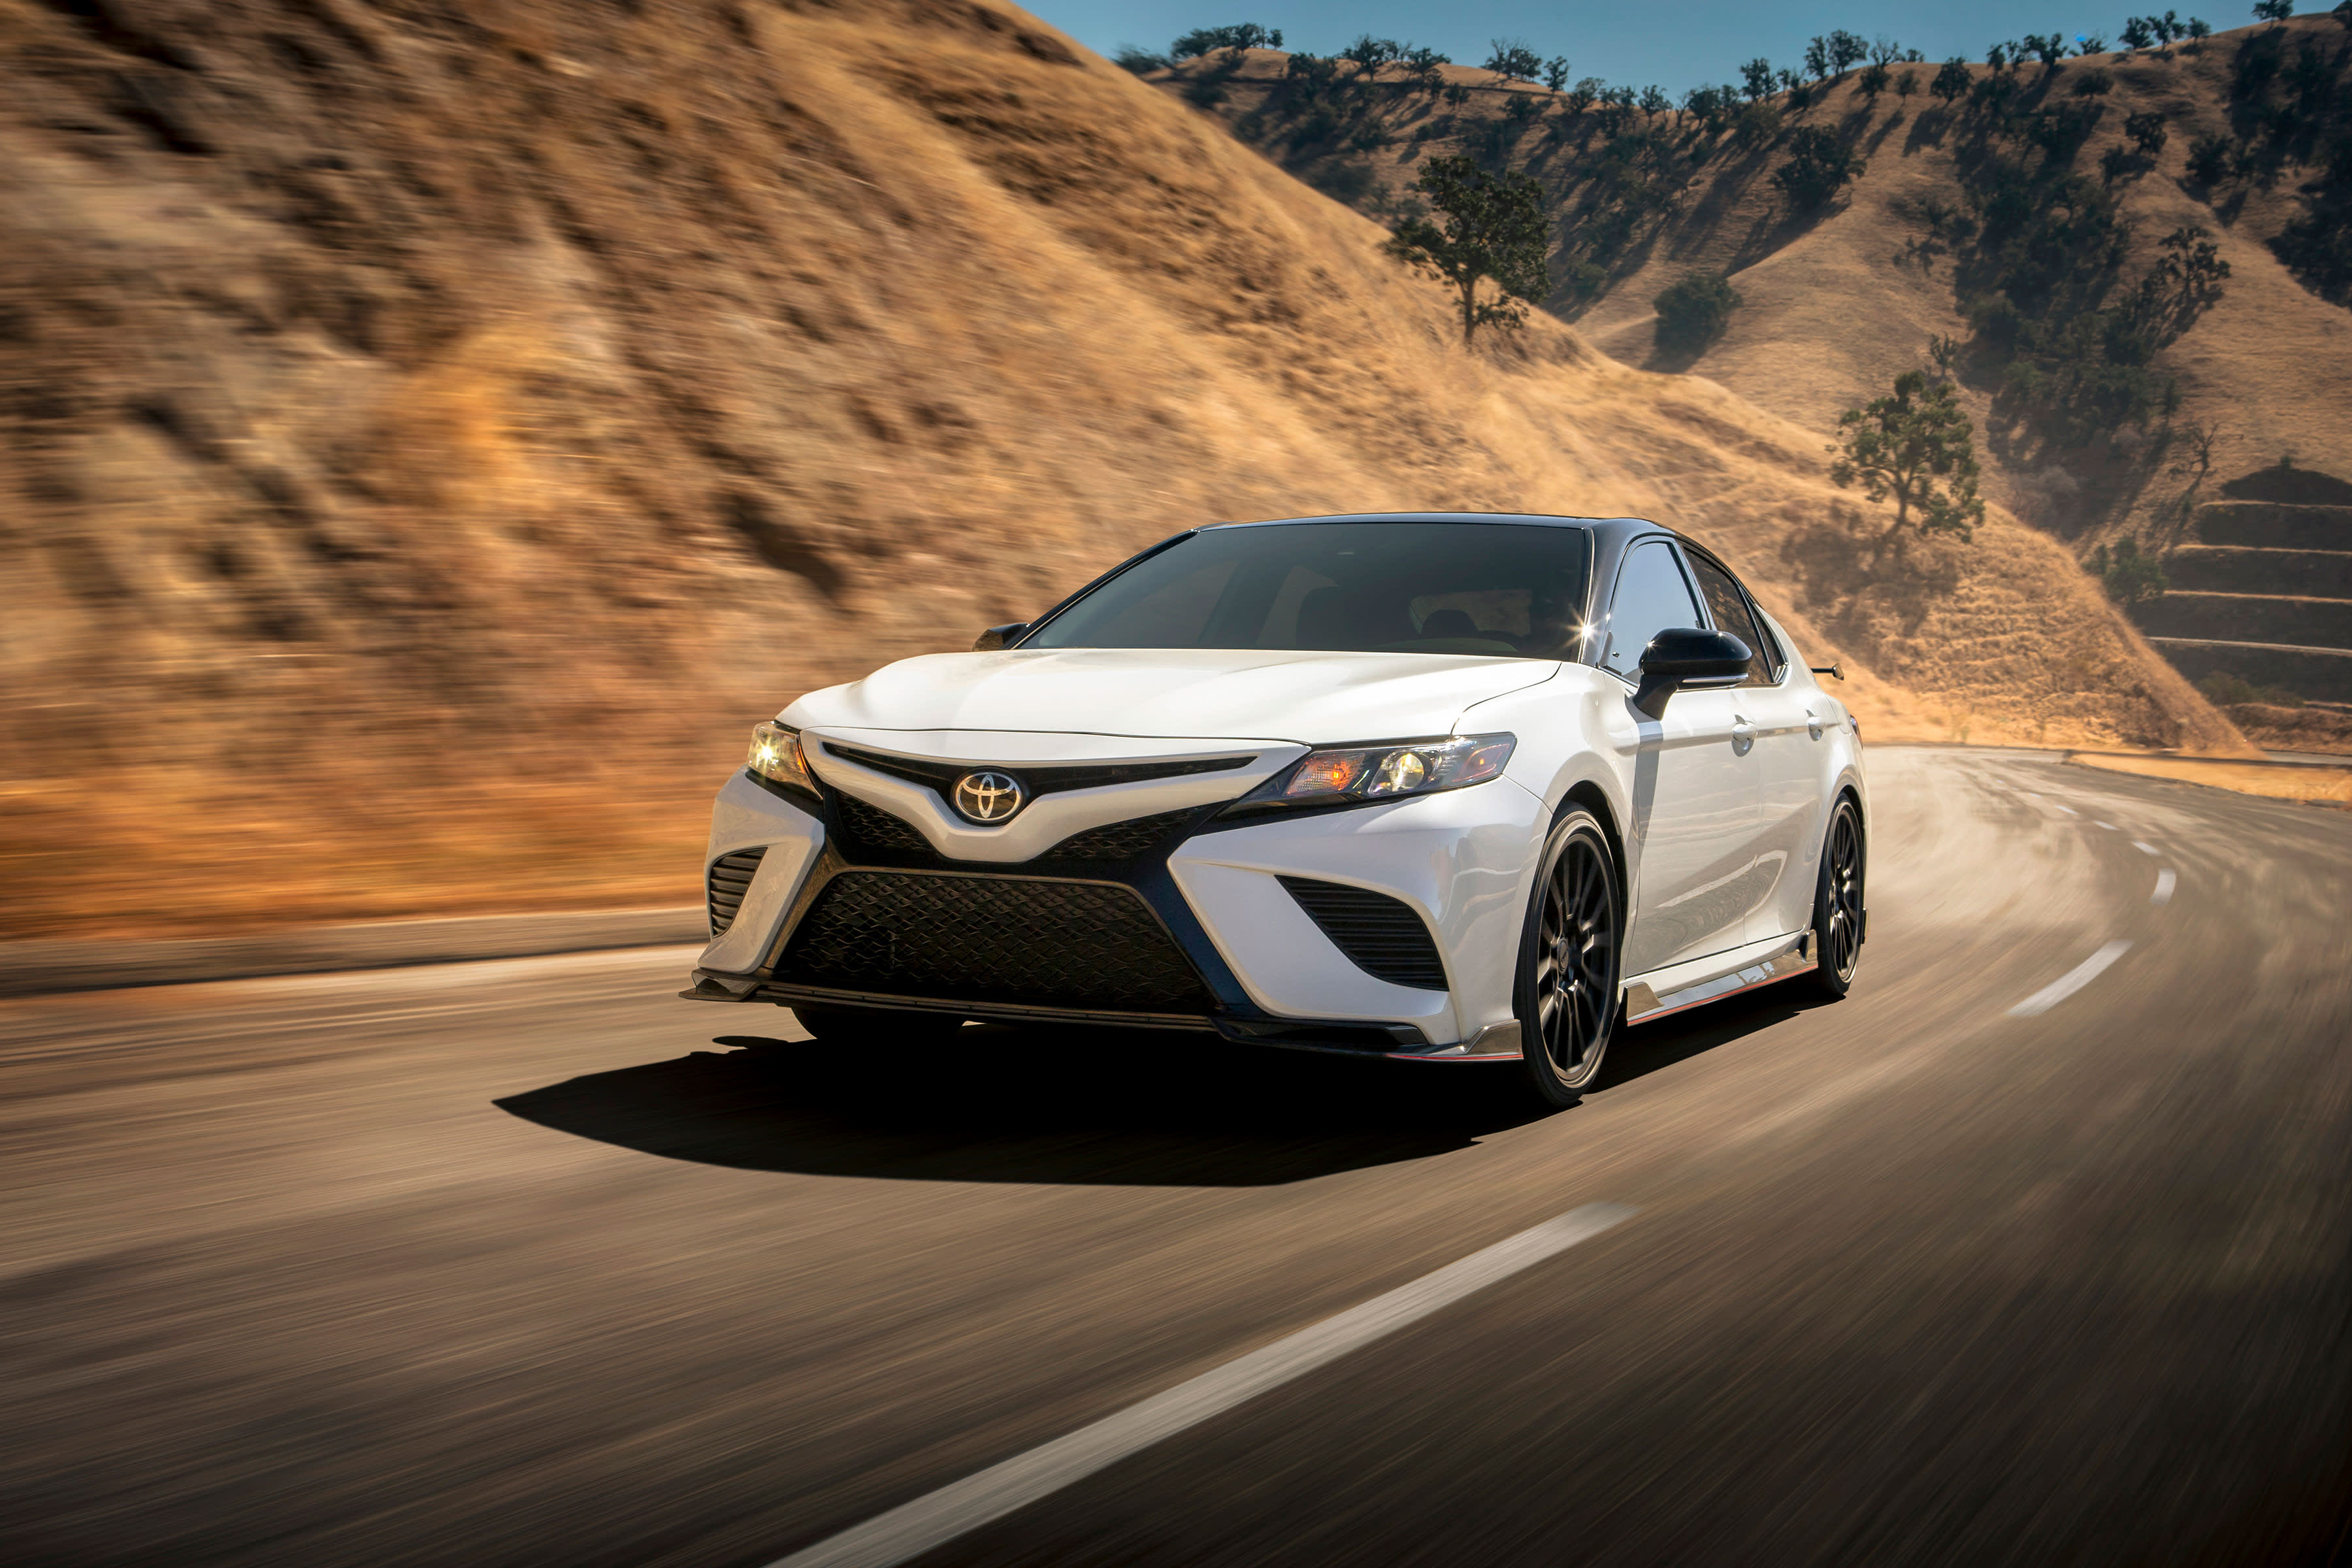 Toyota is making fast, high-performance versions of its popular, but 'boring,' Camry and Avalon sedans